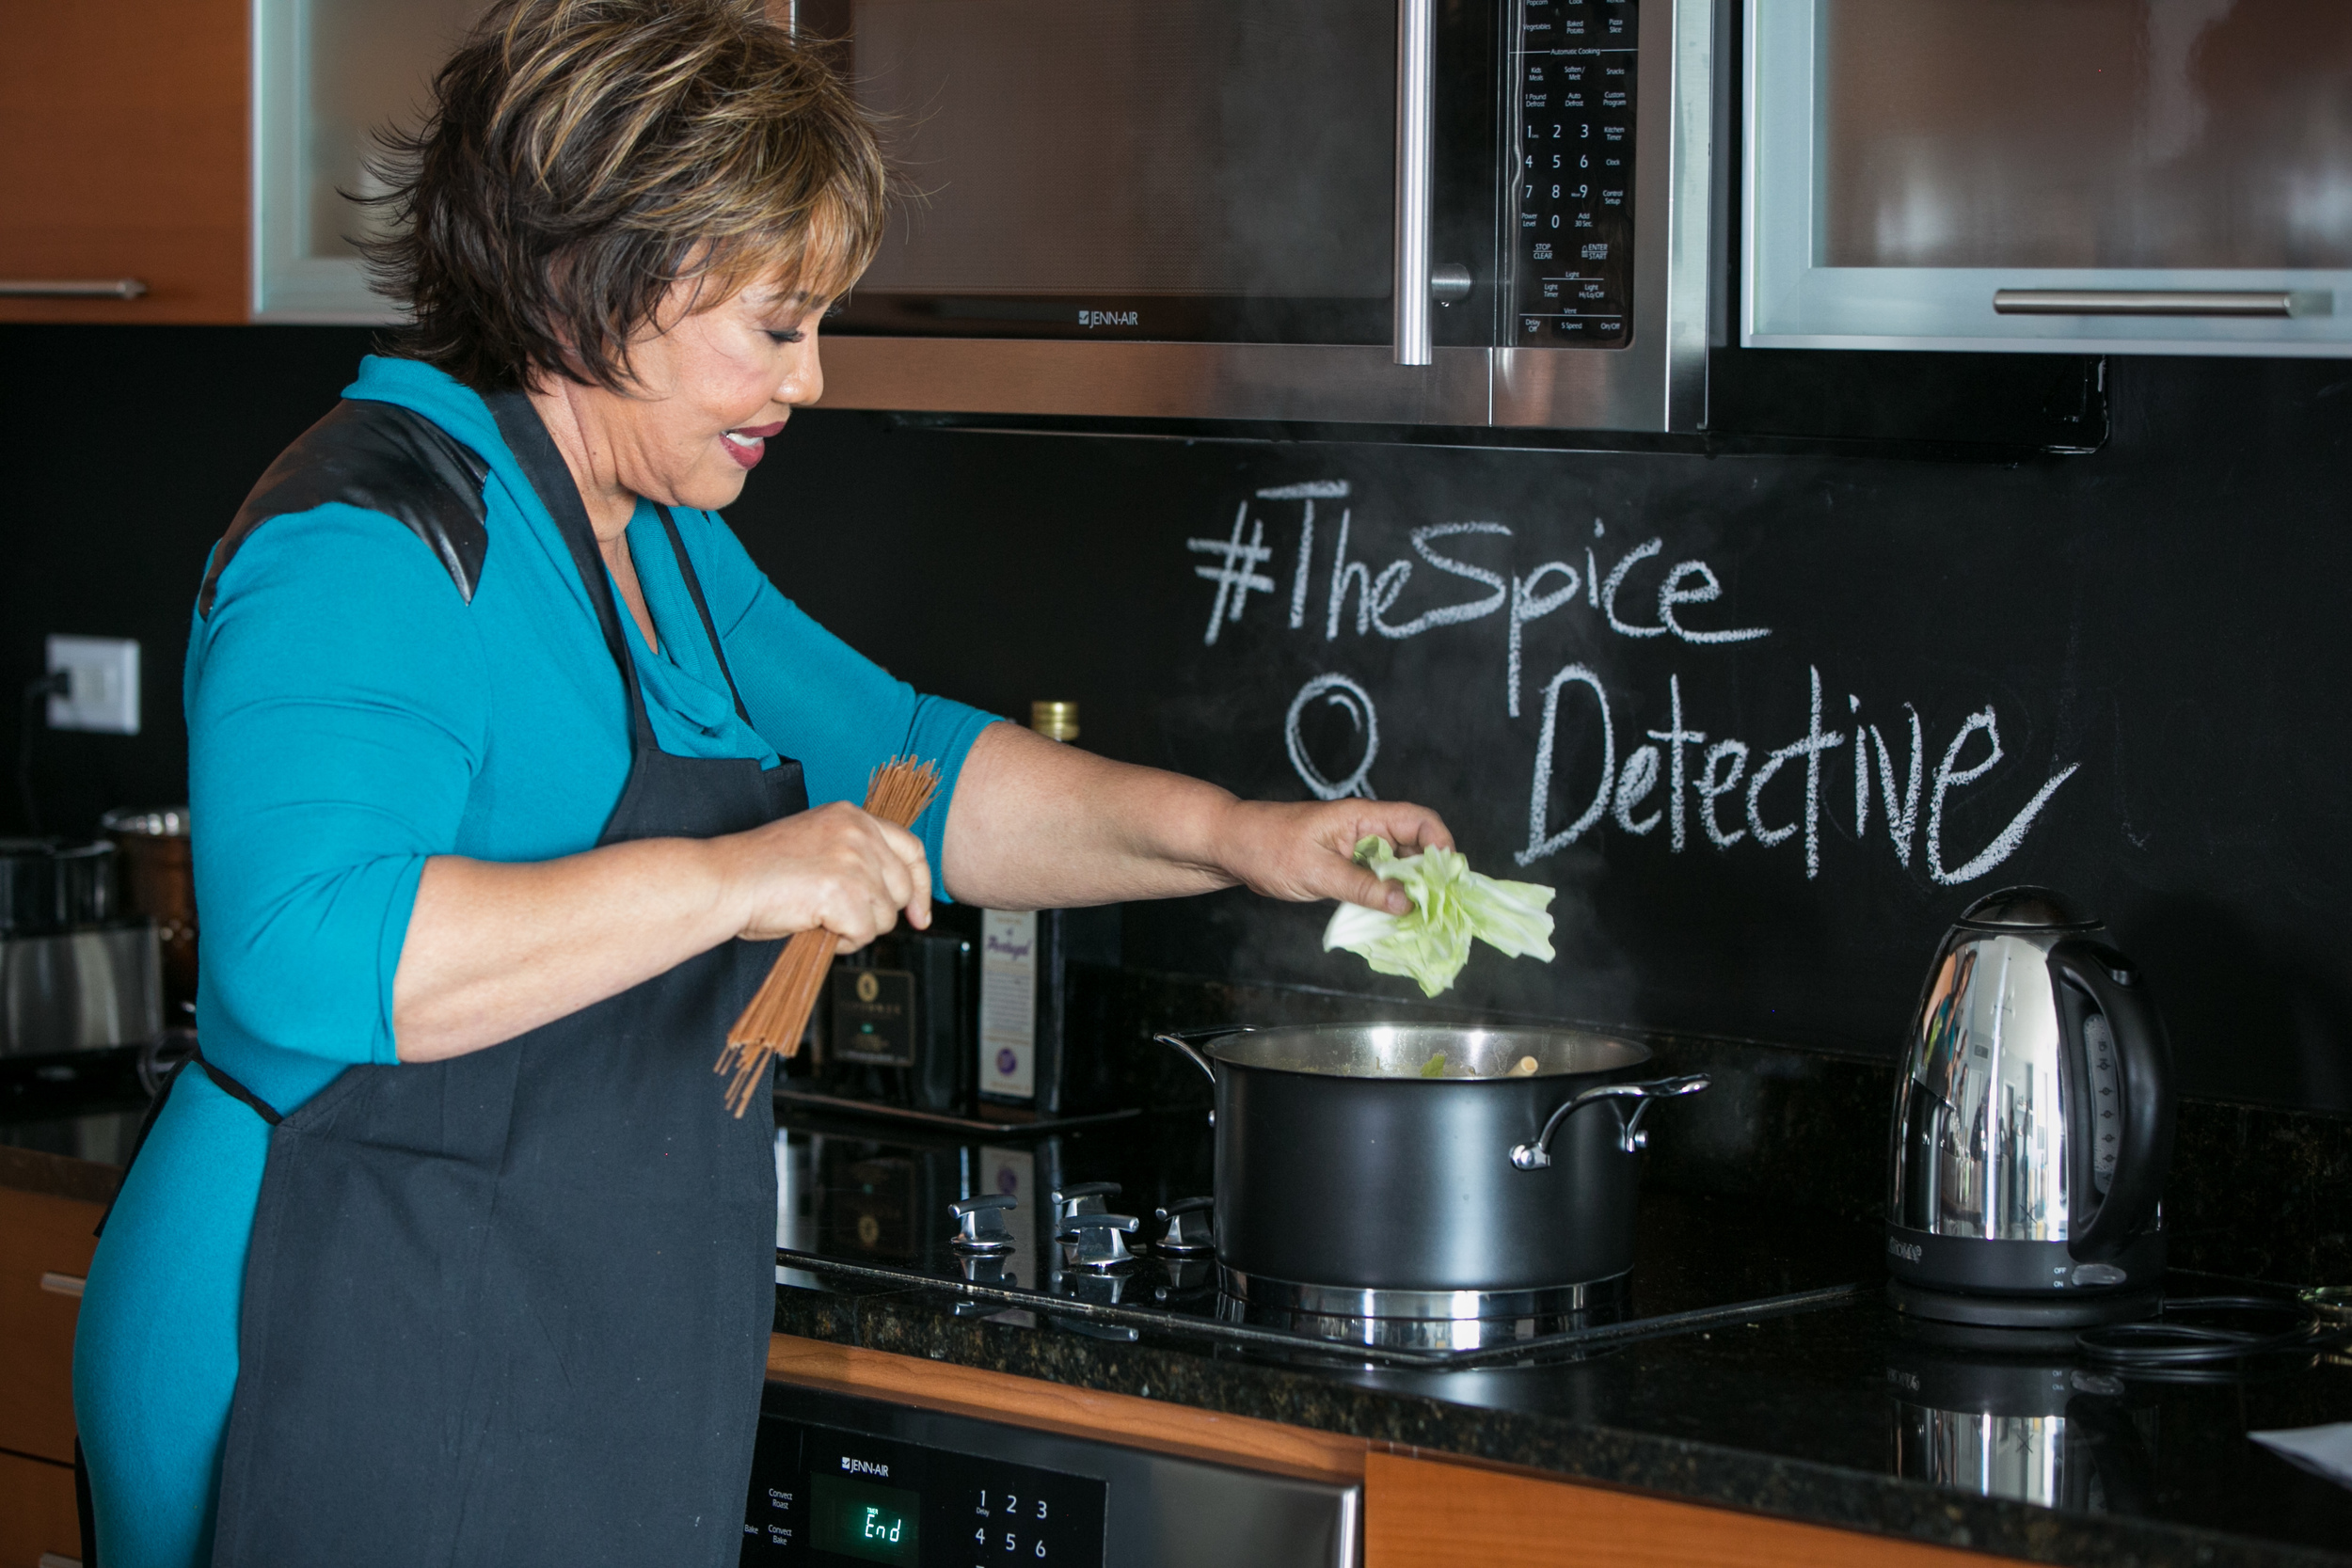 Evelyn Cadet Making Soup Joumou on the Spice Detective.jpg